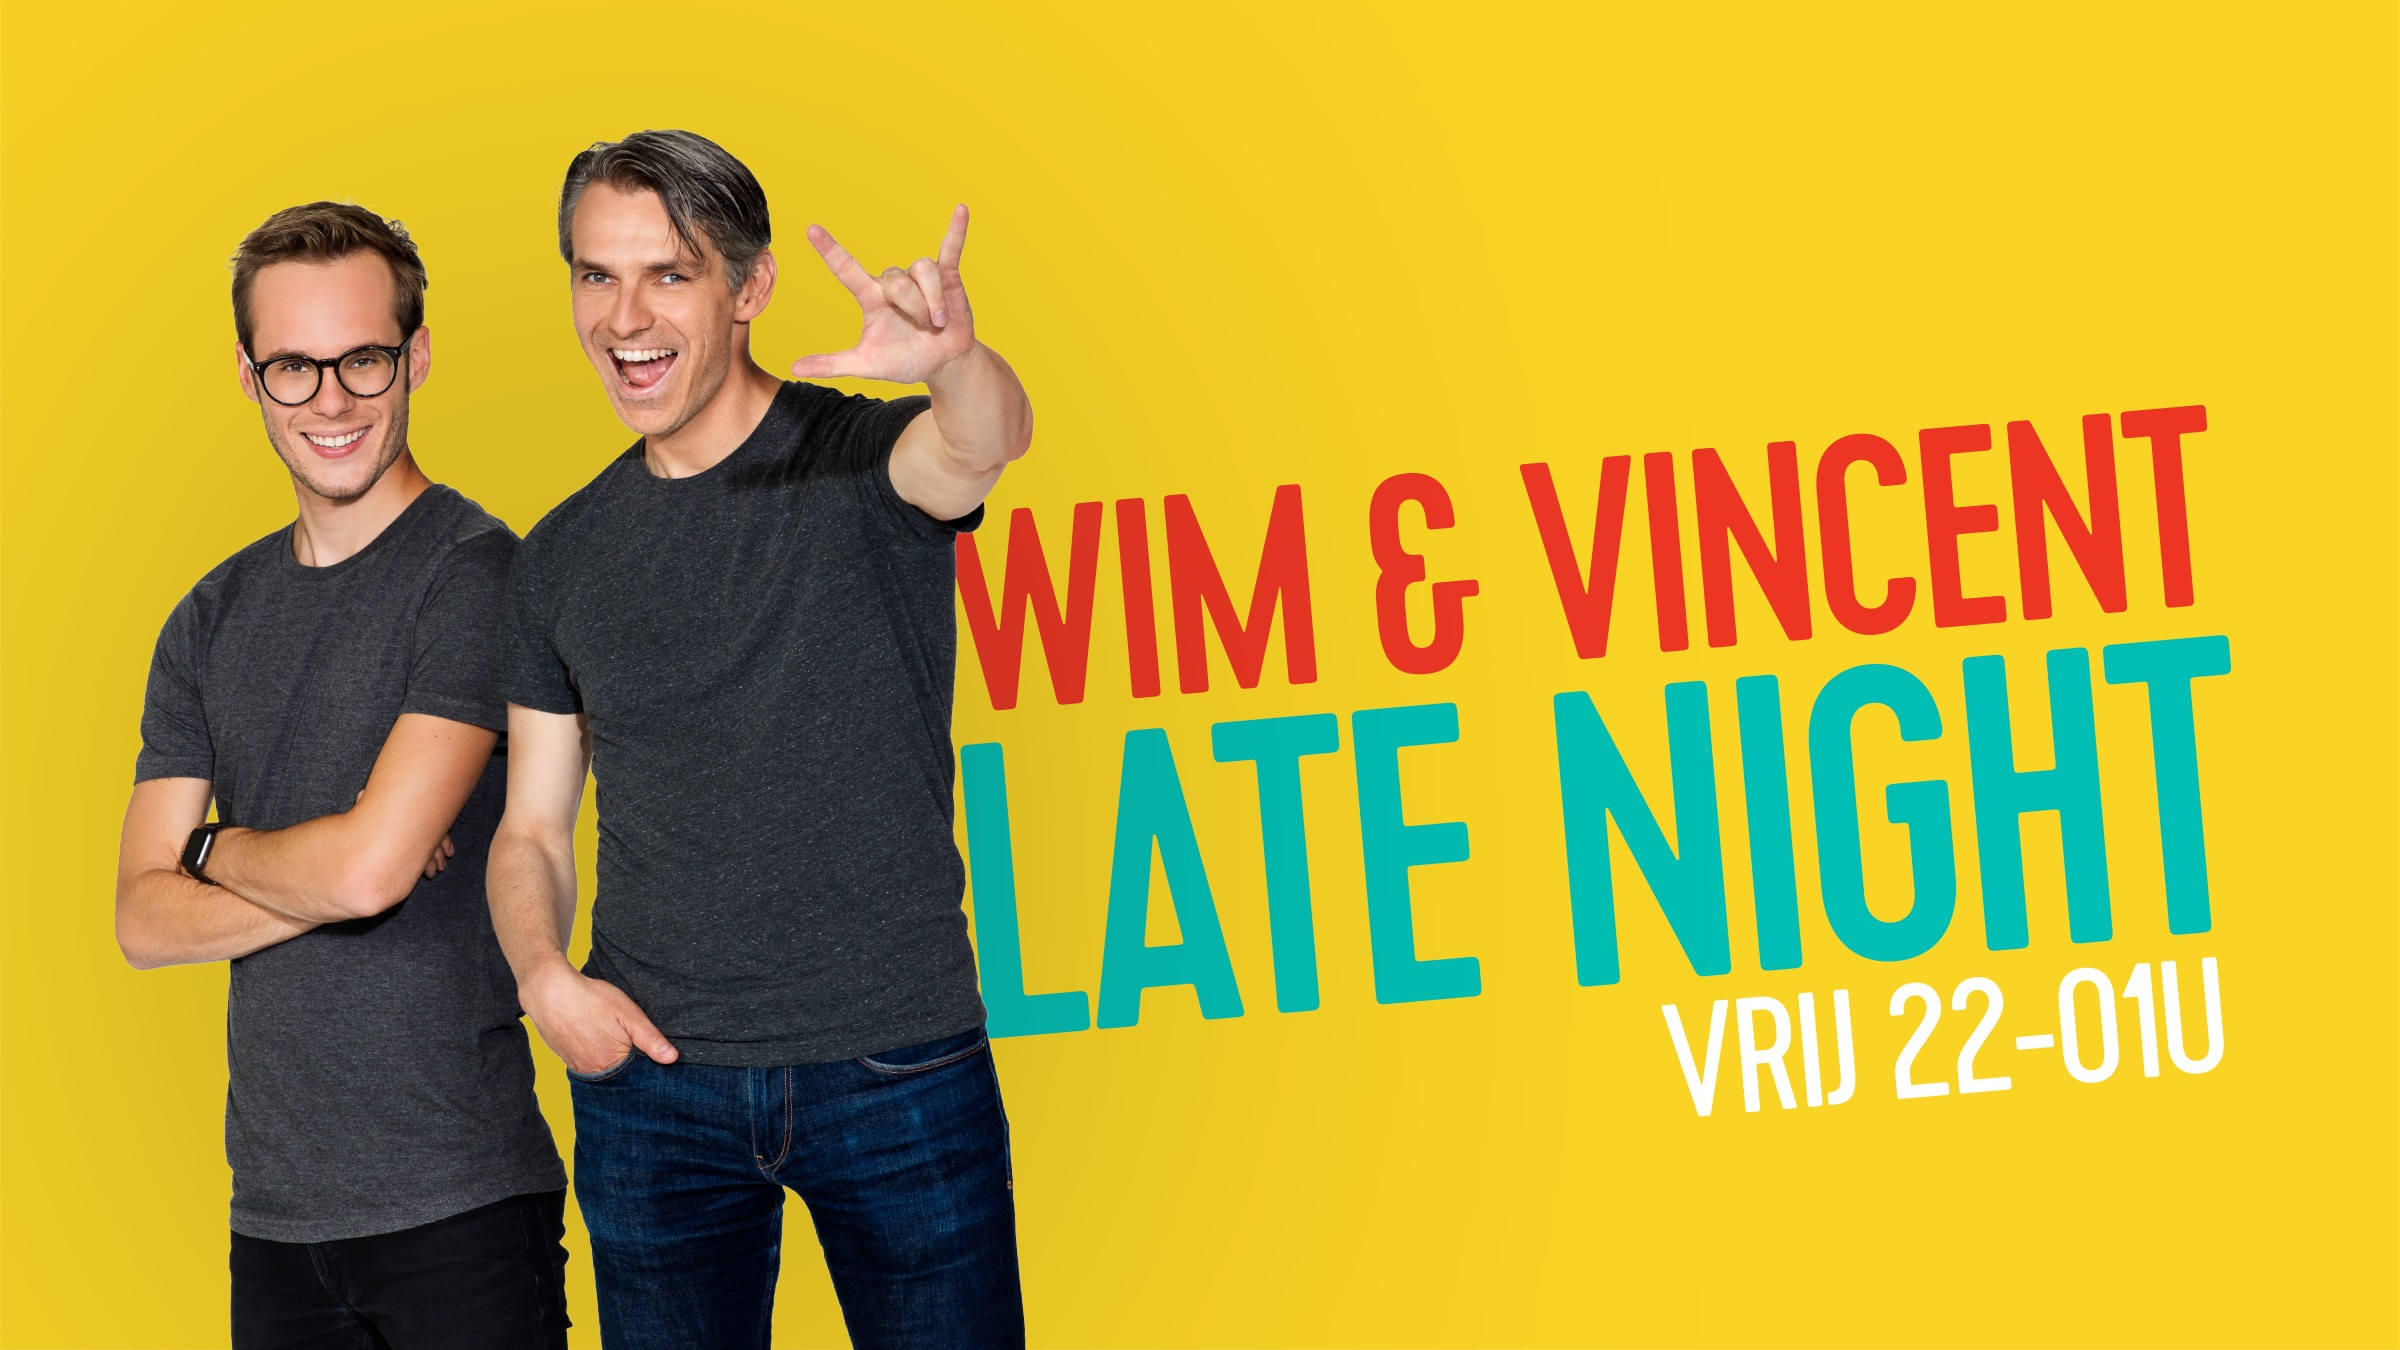 Wim   vincent late night